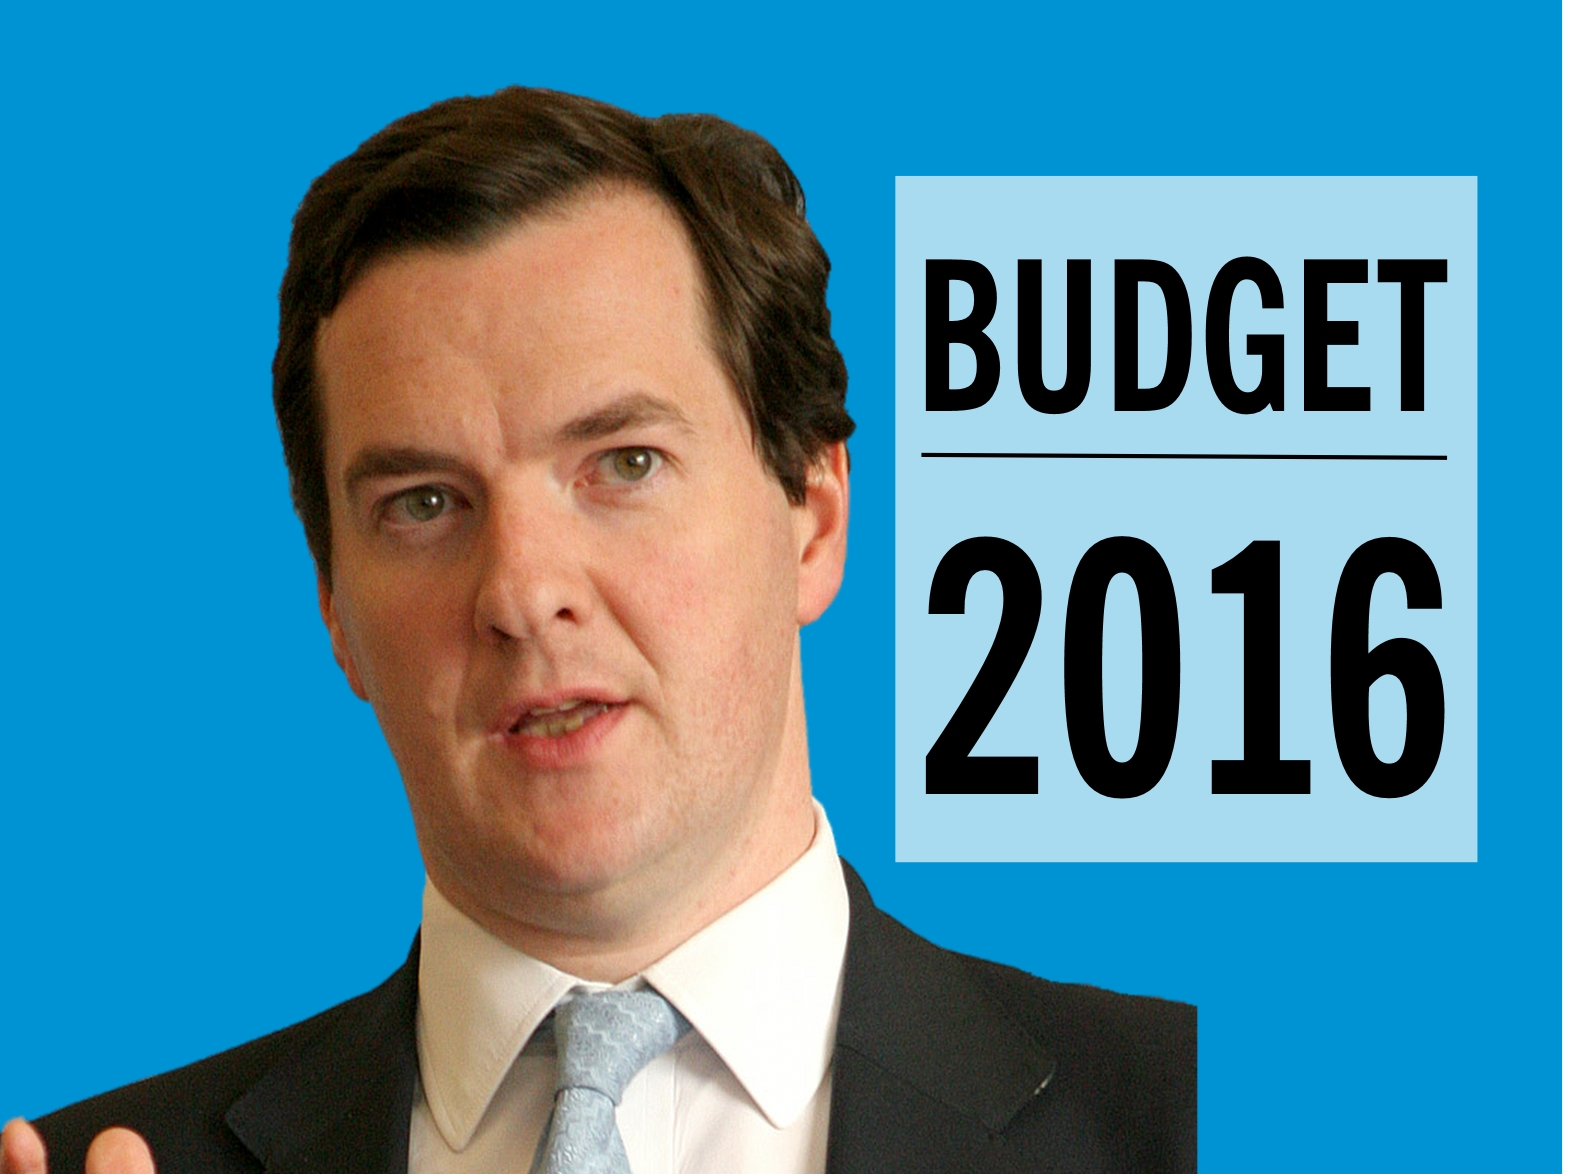 Budget 2016: Response, templates and briefing